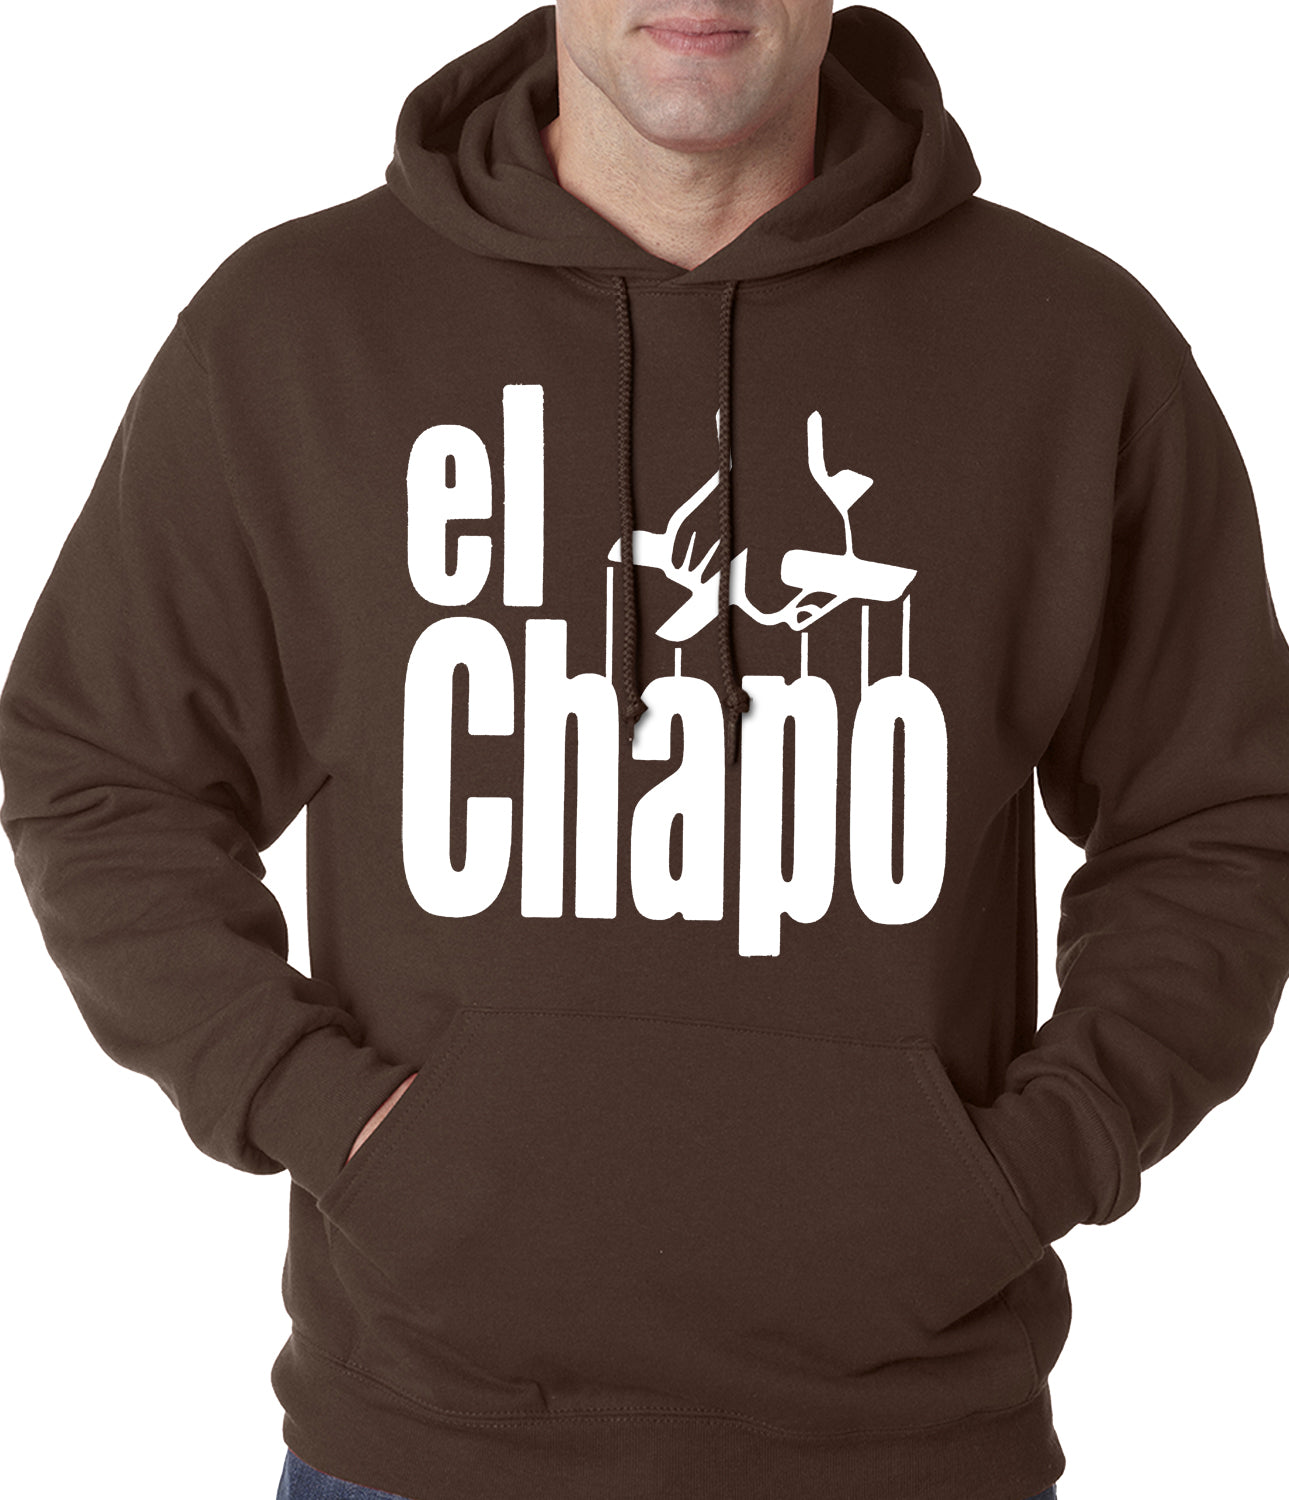 The God Father Inspired El Chapo Adult Hoodie